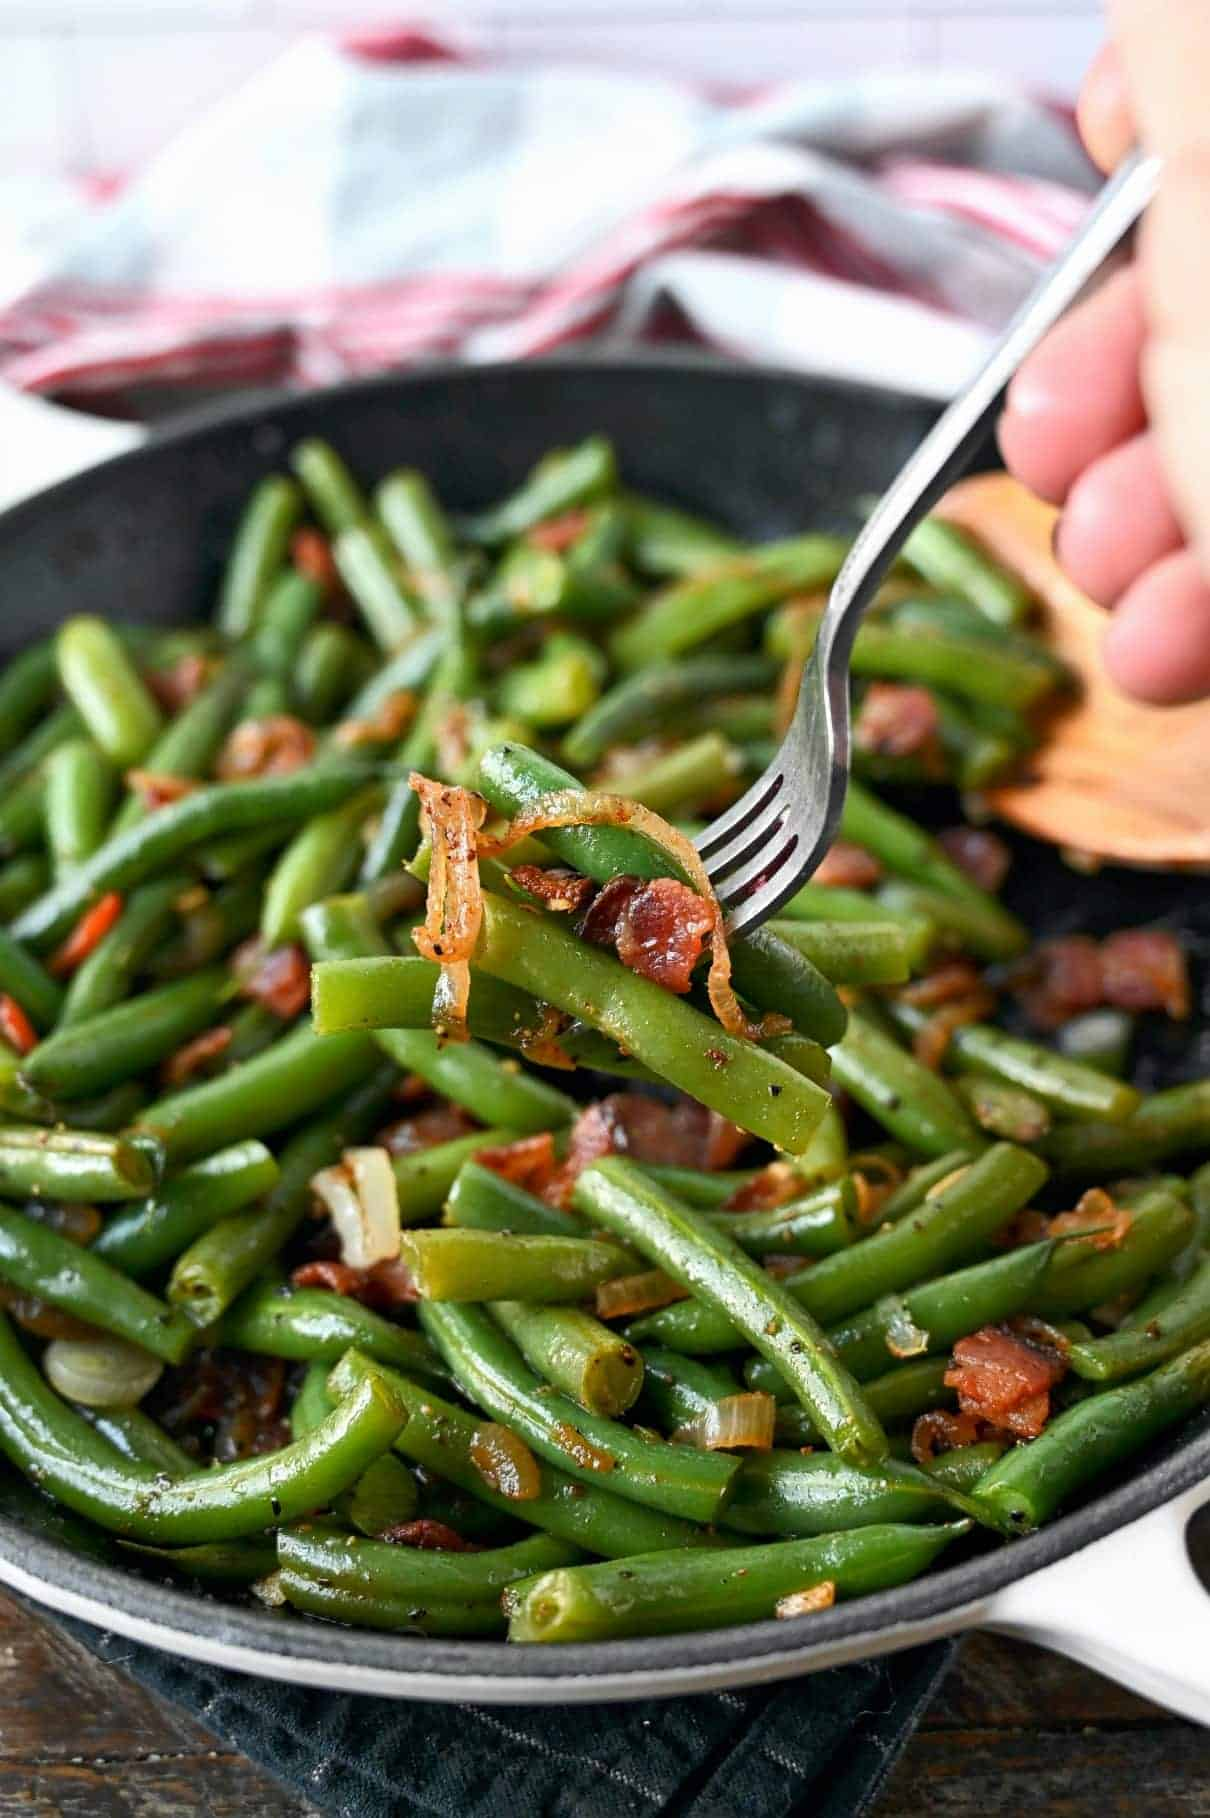 Green beans and bacon in a skillet with a fork picking up a bite.